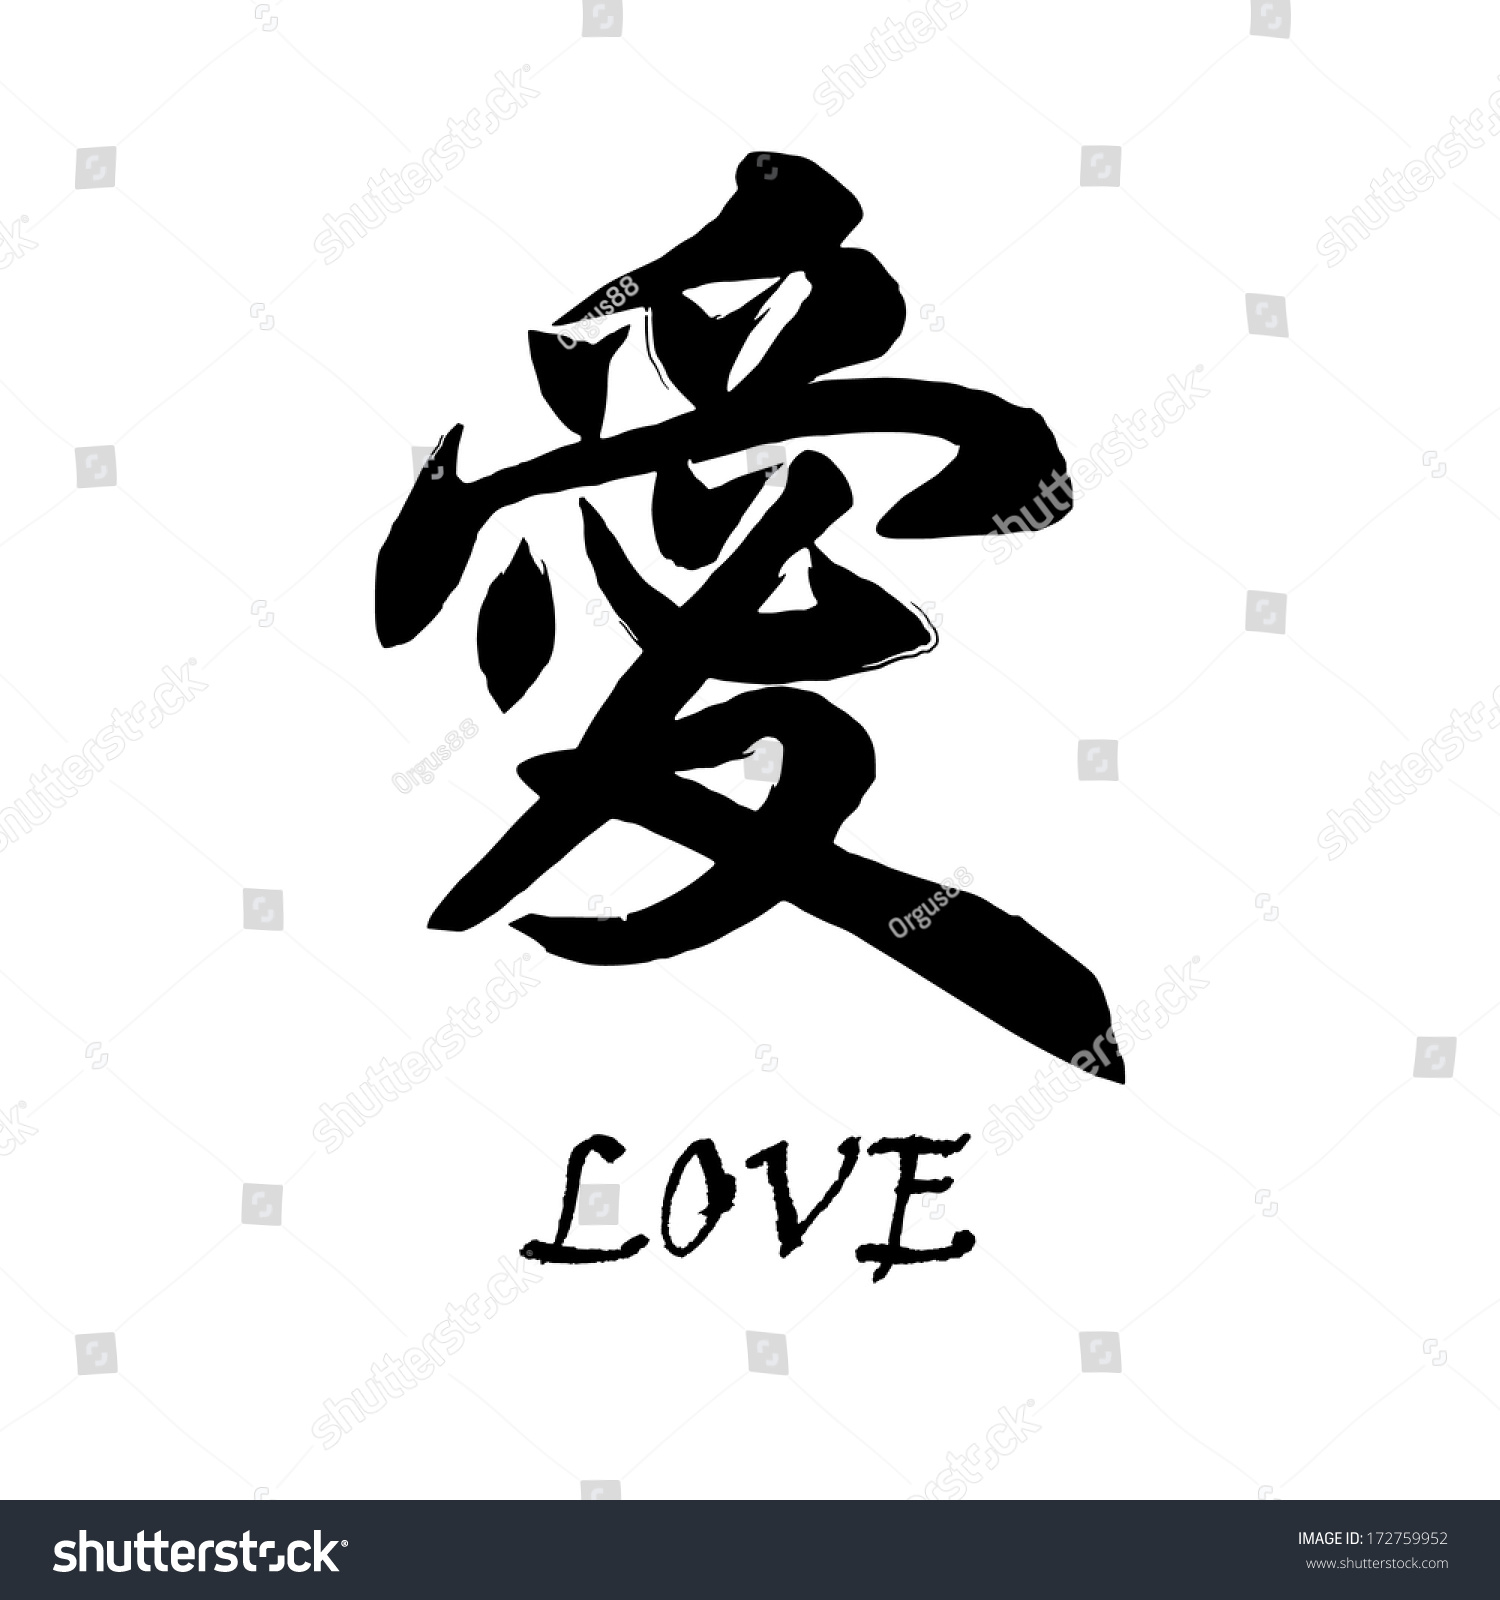 japanese writing love Over 500 free japanese writing designs - page 1 of 48  ambition japanese  kanji translation of 'love' love japanese kanji translation of 'bushido' bushido.